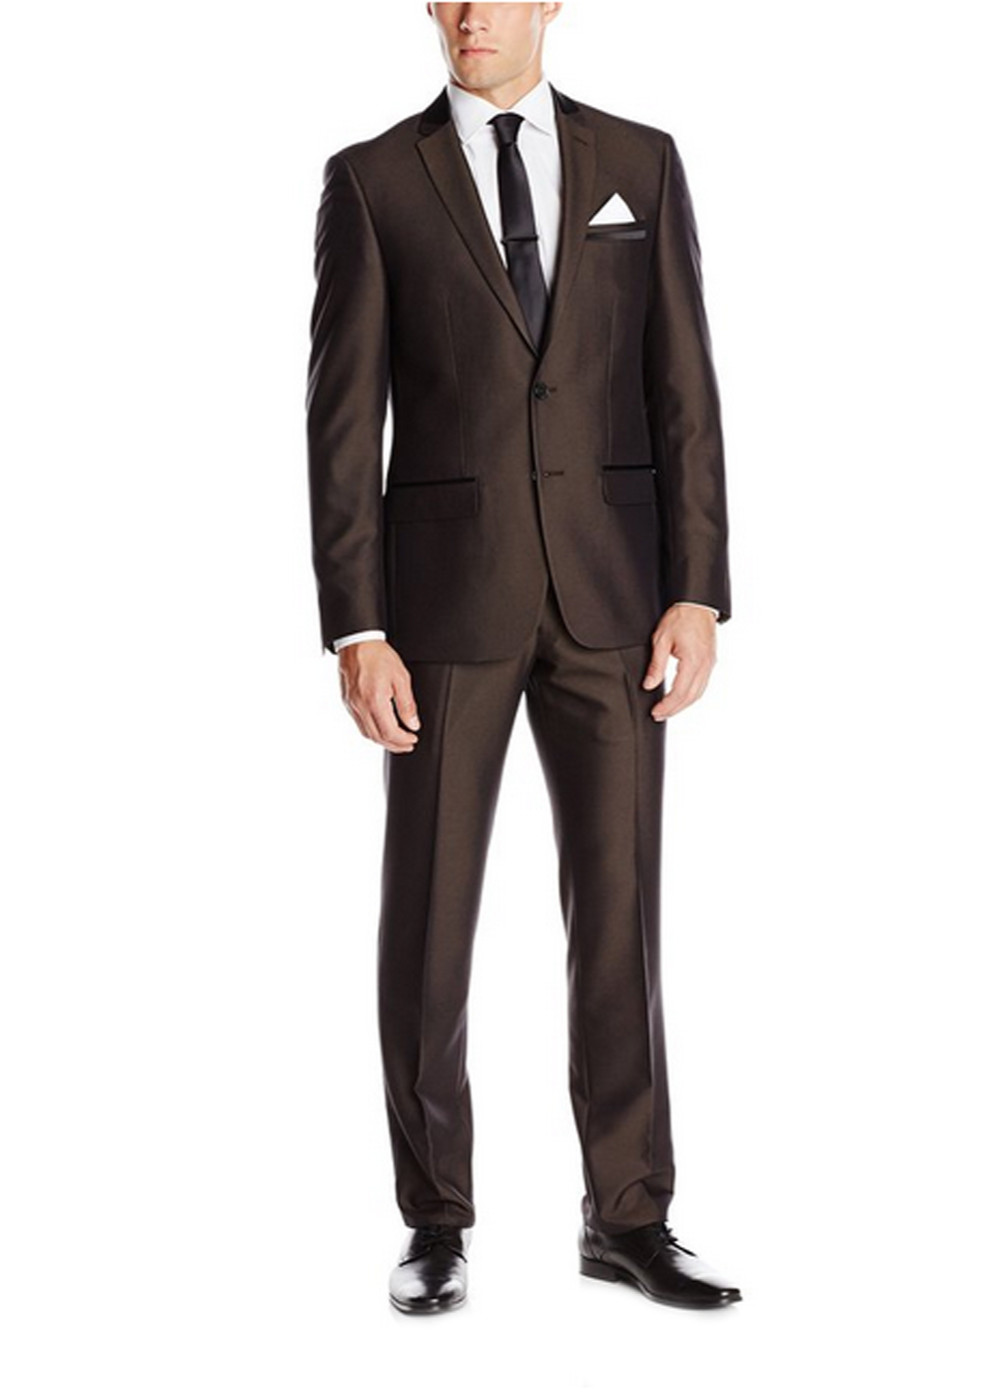 2017 Hot Simple Suits Men Dark Brown Wedding Suits Grooms Tuxedos Mens Suits Fit Groomsmen Suits (Jacket+Pant)